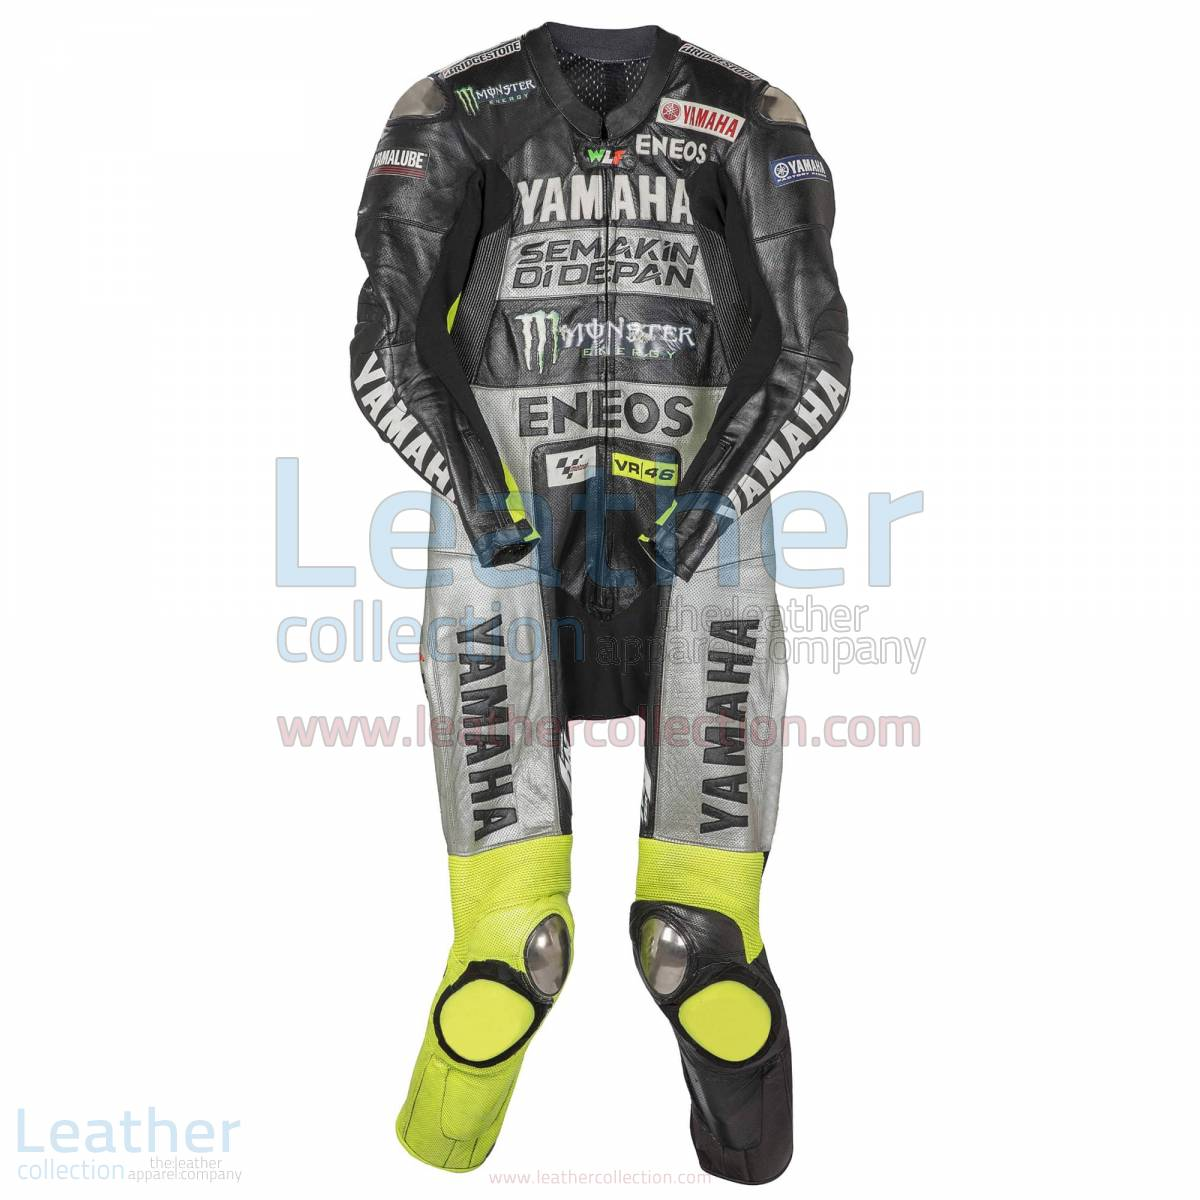 Valentino Rossi Winter Test Yamaha MotoGP 2013 Suit